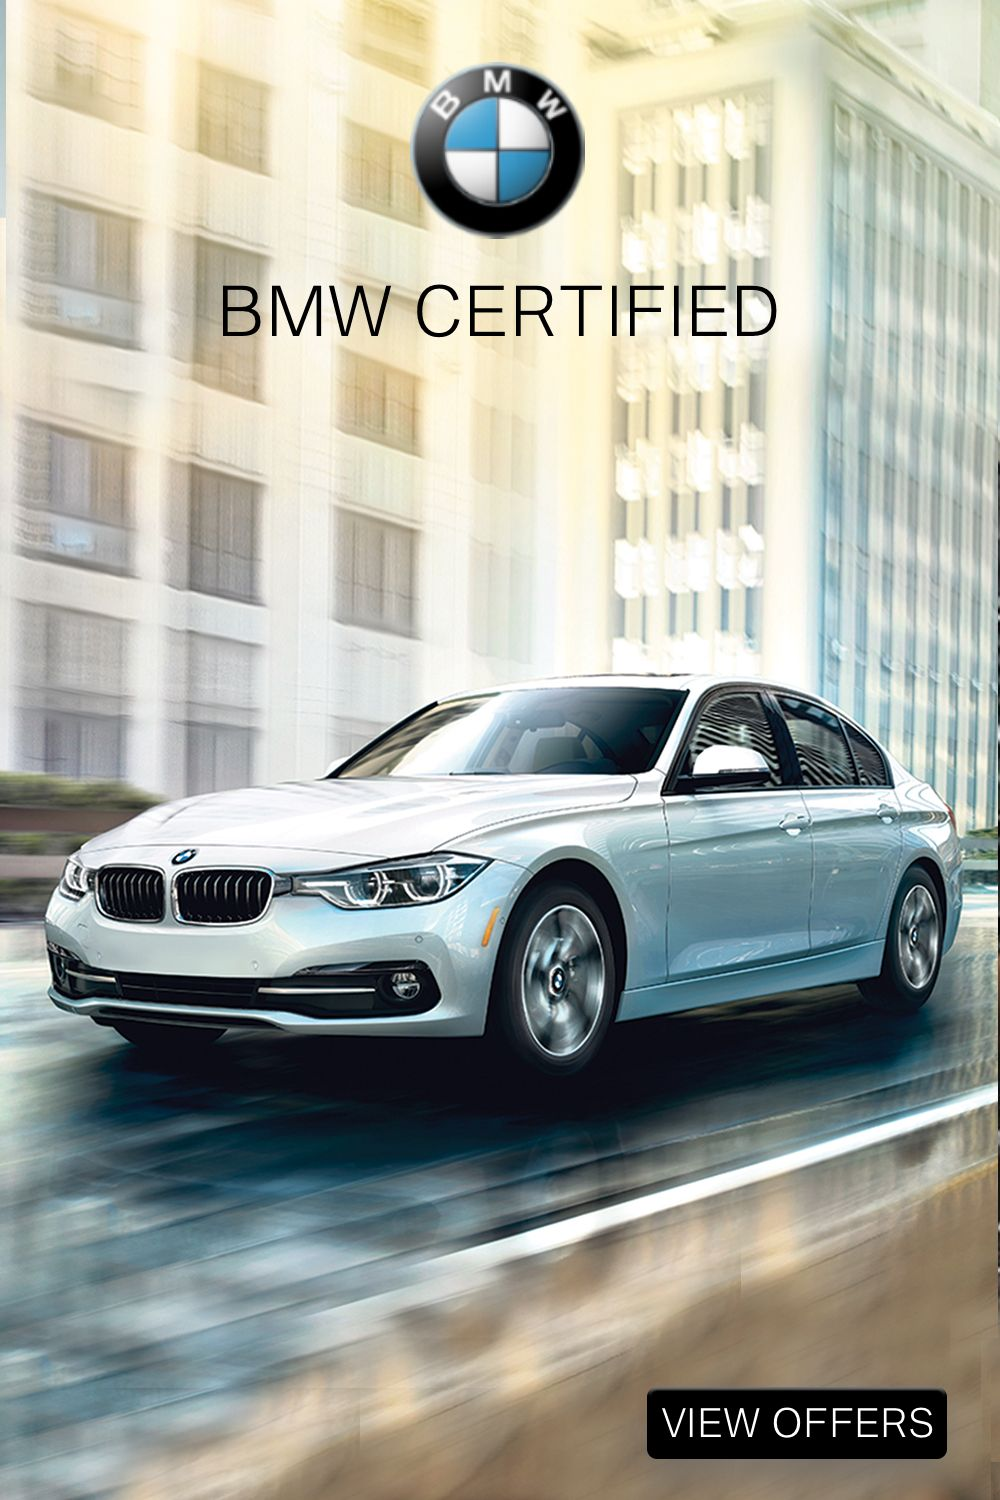 The Bmw Certified 3 Series Bmw Certified Pre Owned Cars Top Luxury Cars